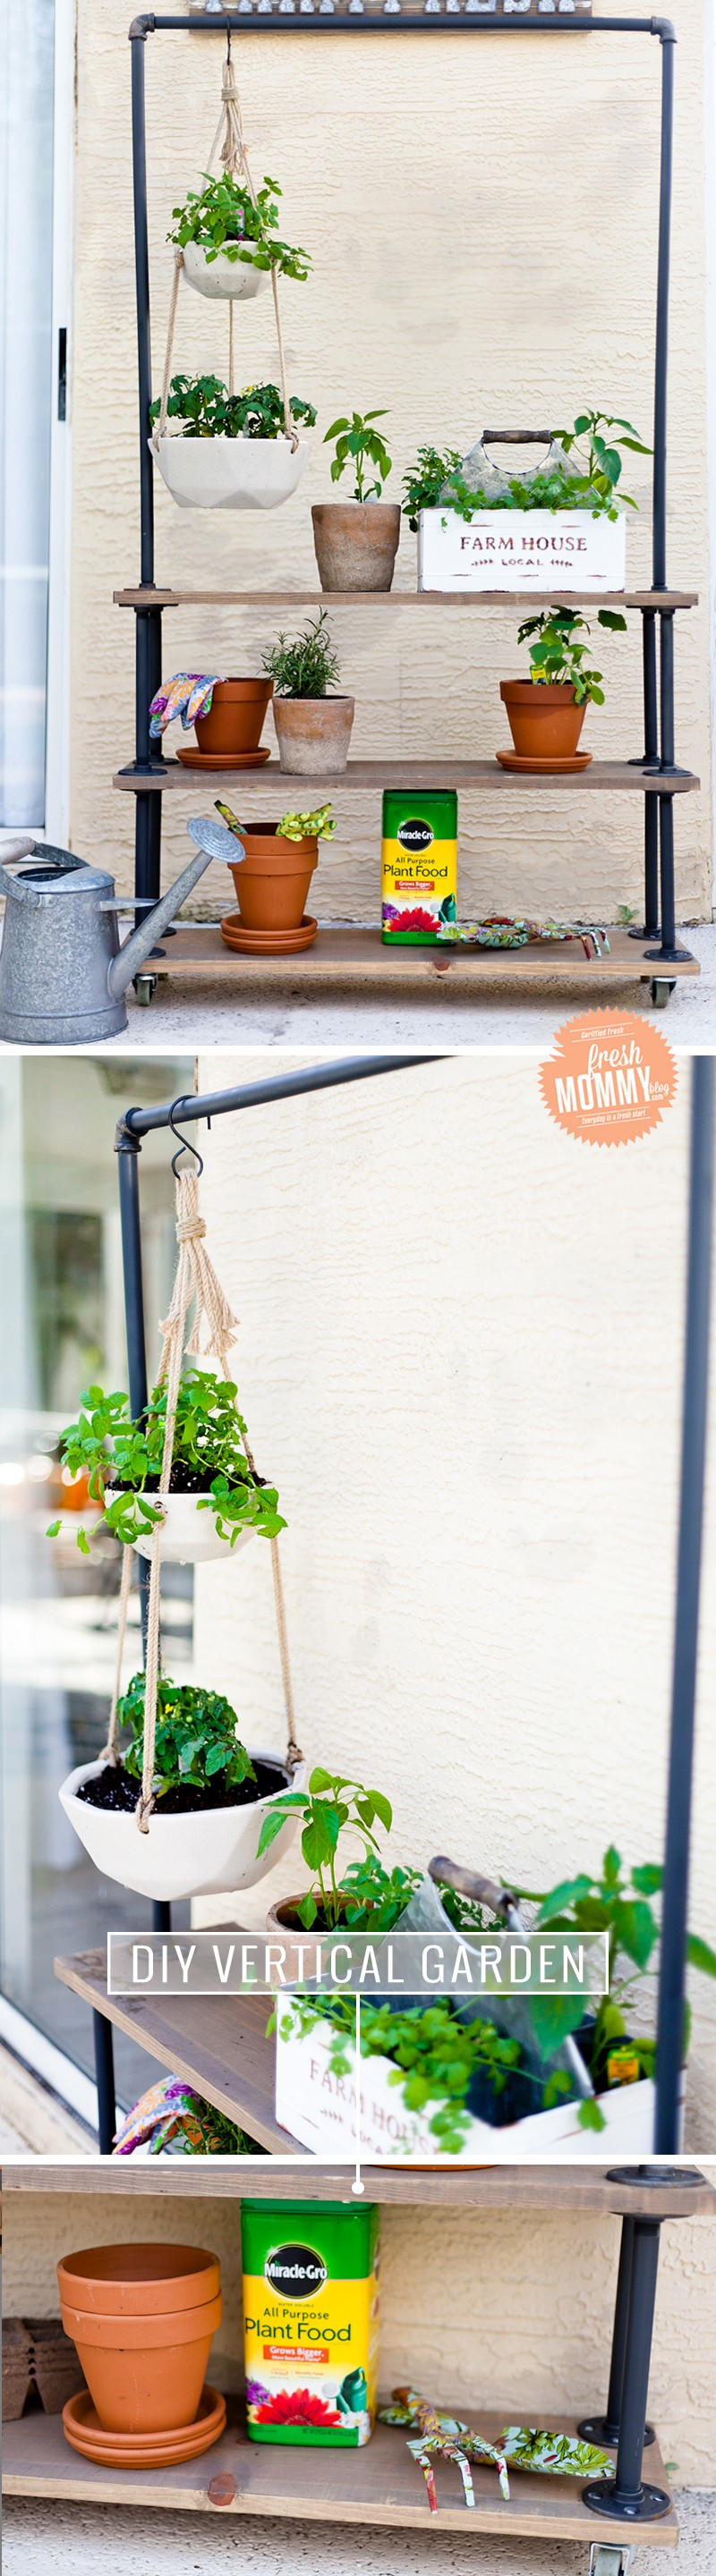 Make Your Own DIY Rolling Vertical Garden and Plant Shelf by popular South Florida lifestyle blogger Fresh Mommy Blog